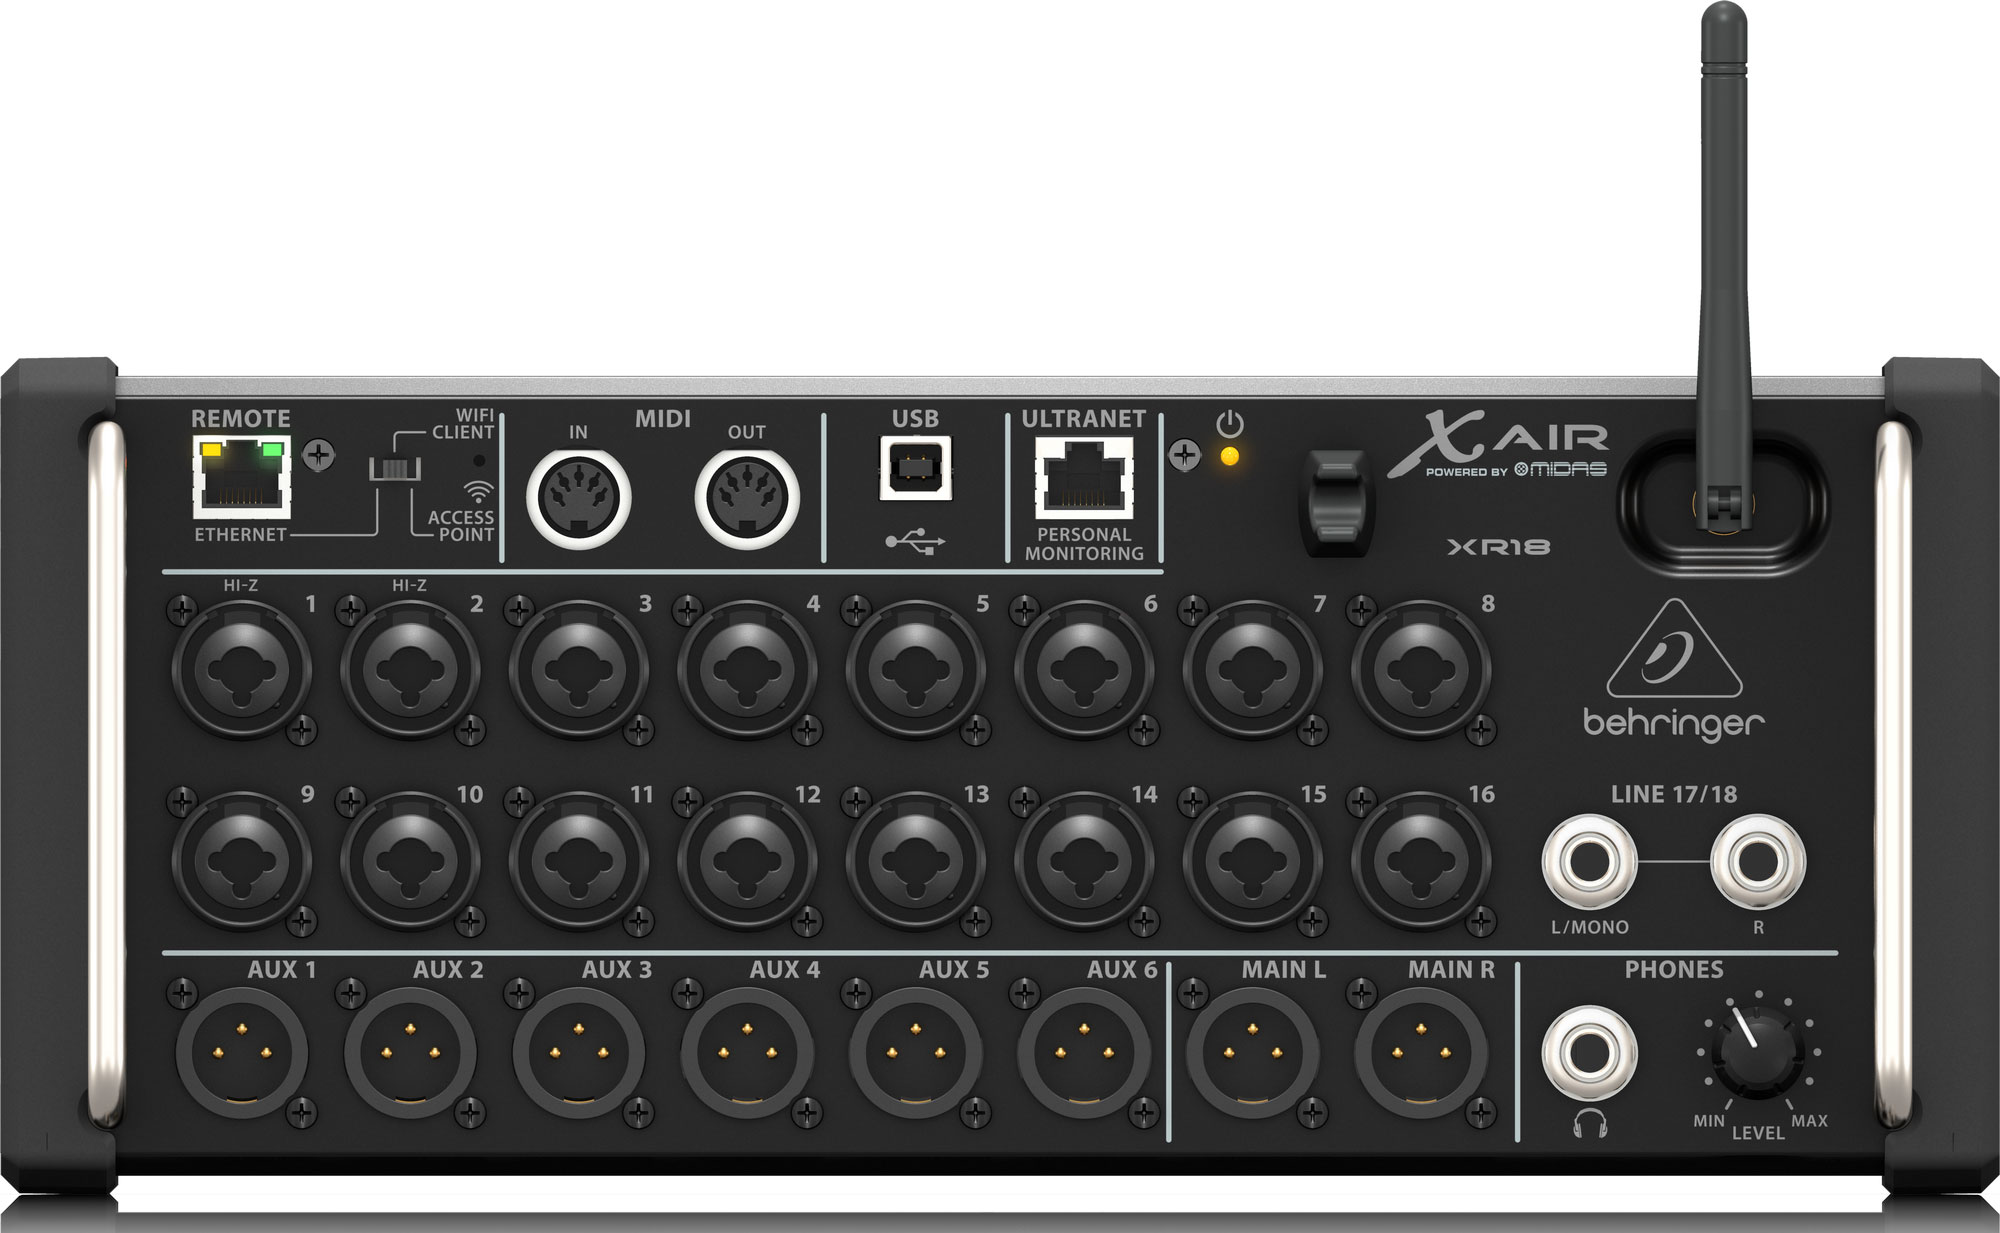 BEHRINGER X(R)18 DRIVER DOWNLOAD